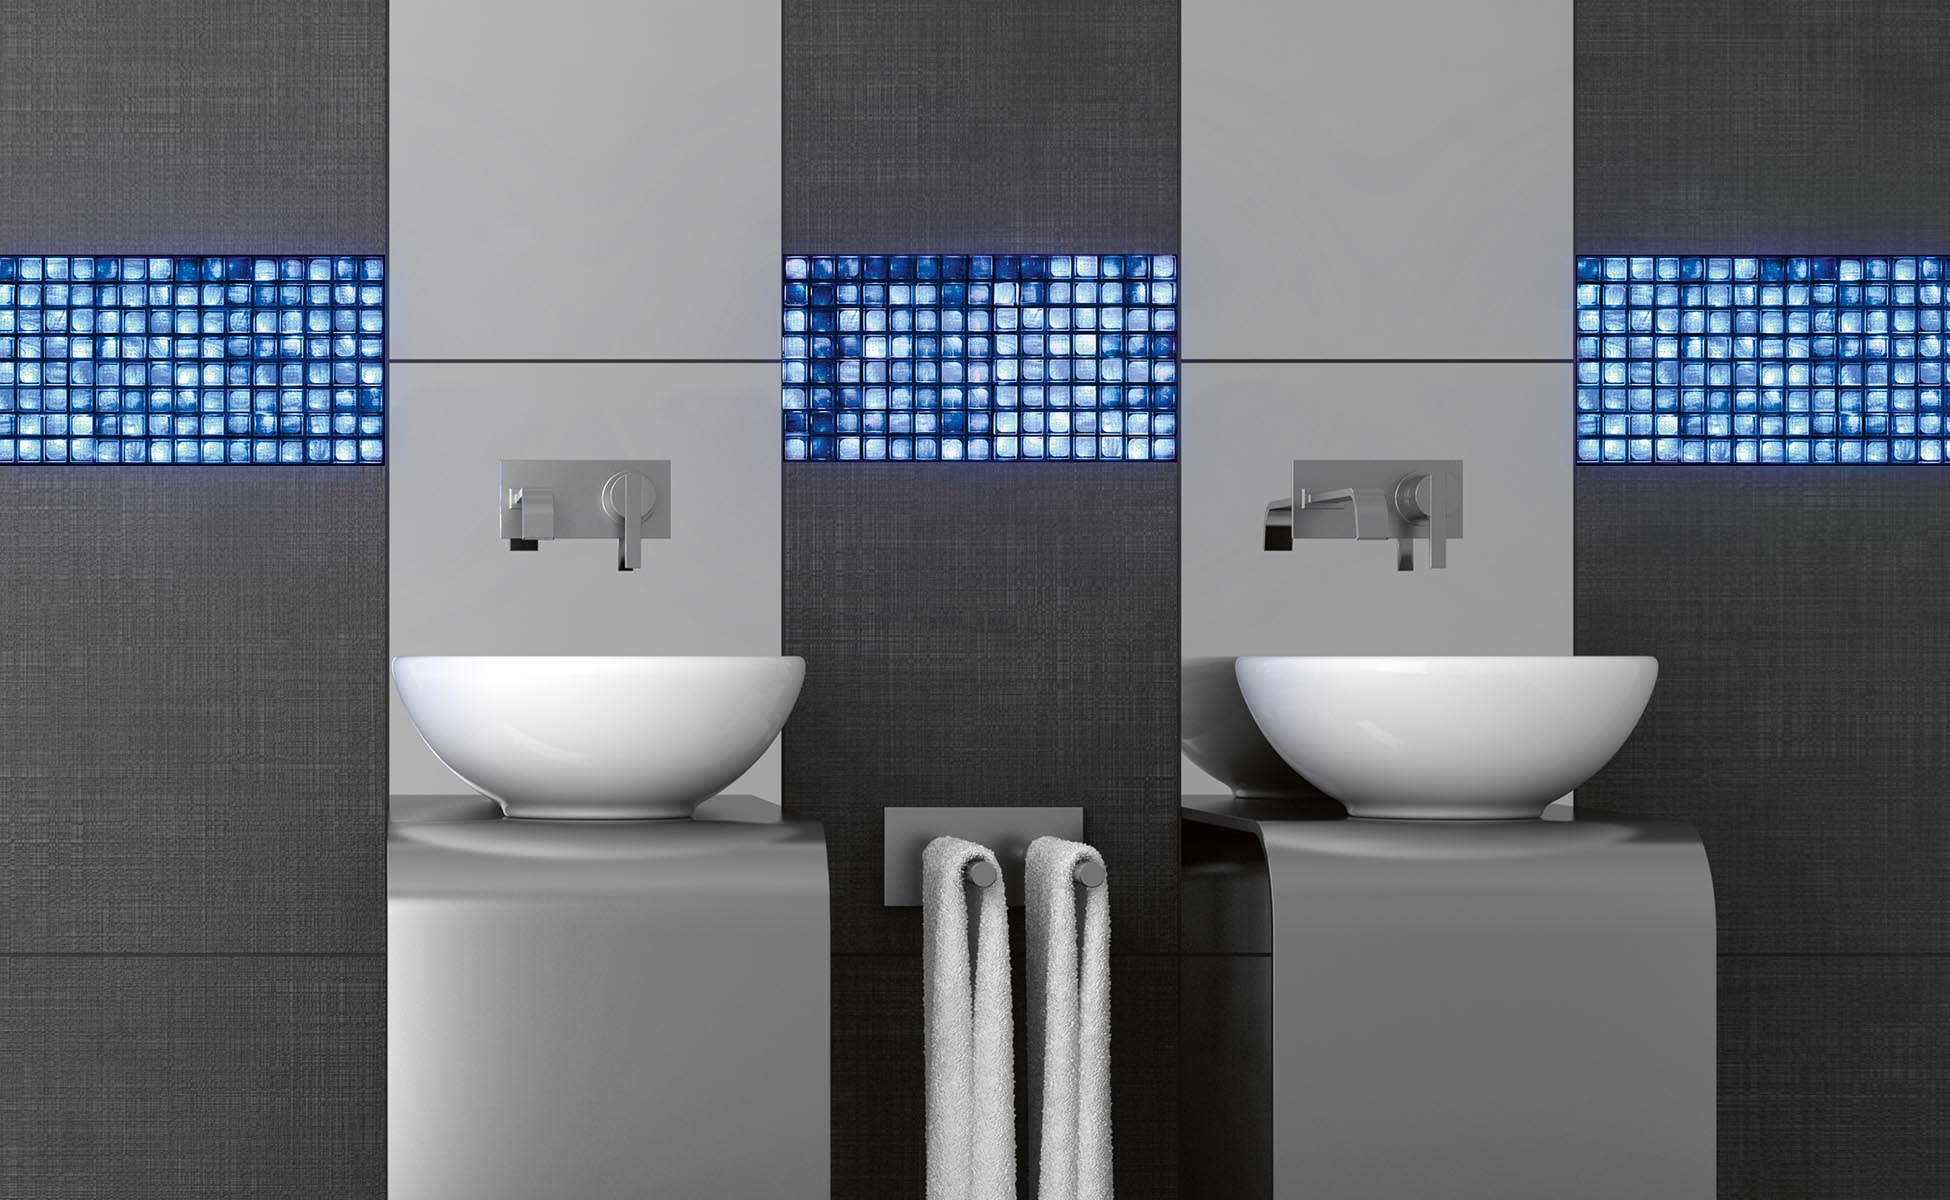 Image of volatiles installed in a bathroom installation for inspirational purposes